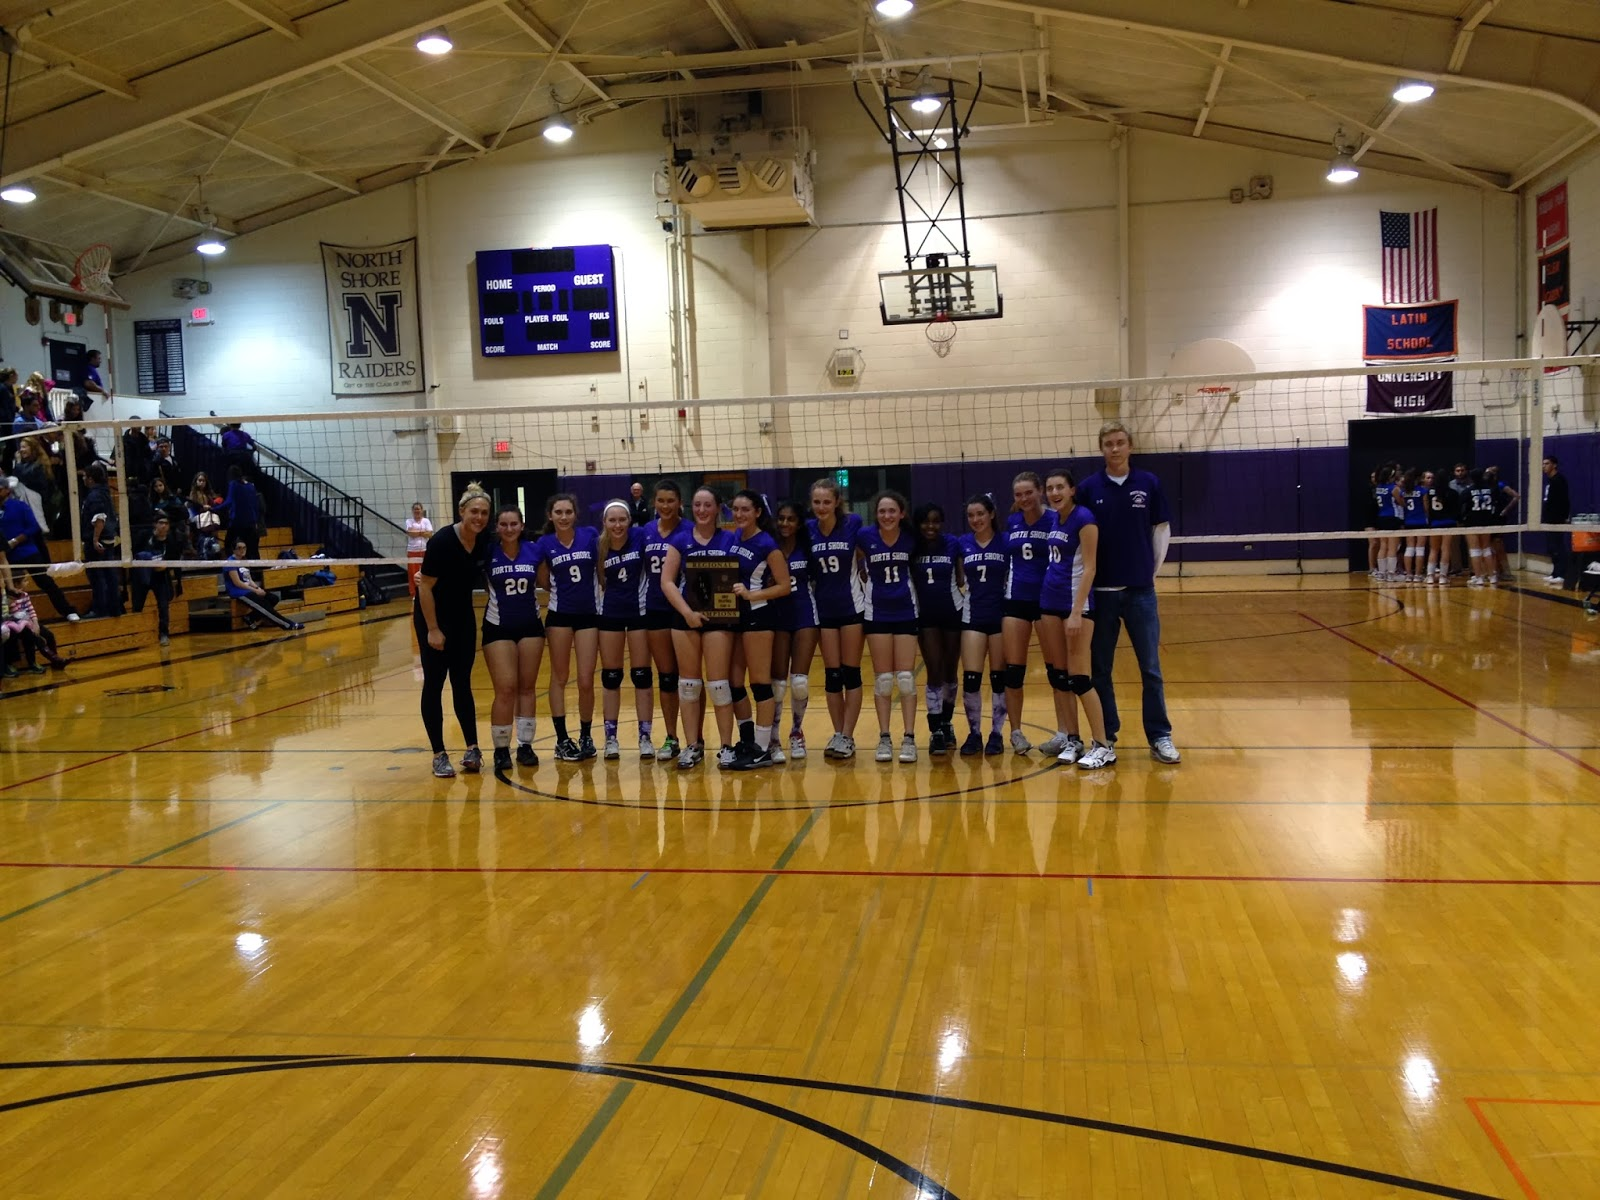 18b9e5c97f Our Varsity Volleyball team advanced to the IHSA Sectional Tournament last  night after they defeated Chicagoland Jewish High School 25-16, 25-16.